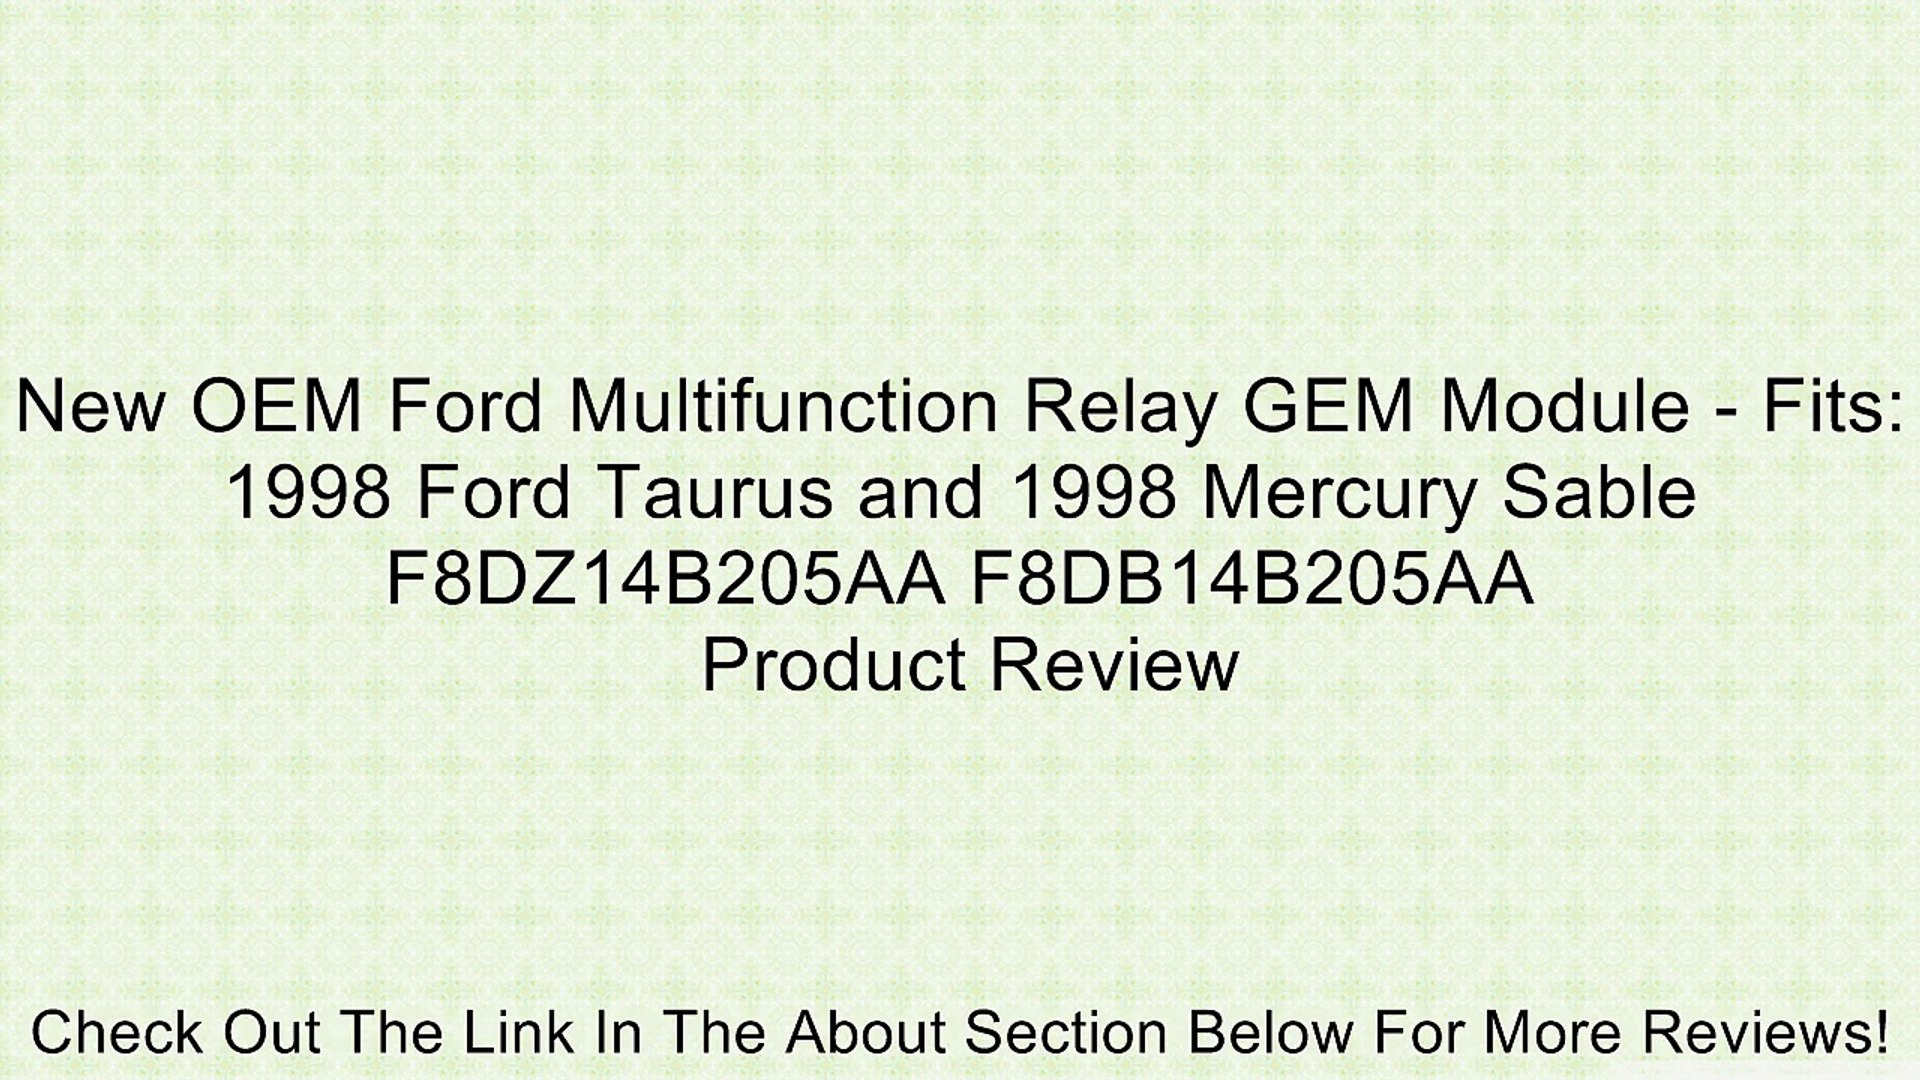 New OEM Ford Multifunction Relay GEM Module - Fits: 1998 Ford Taurus and  1998 Mercury Sable F8DZ14B205AA F8DB14B205AA Review